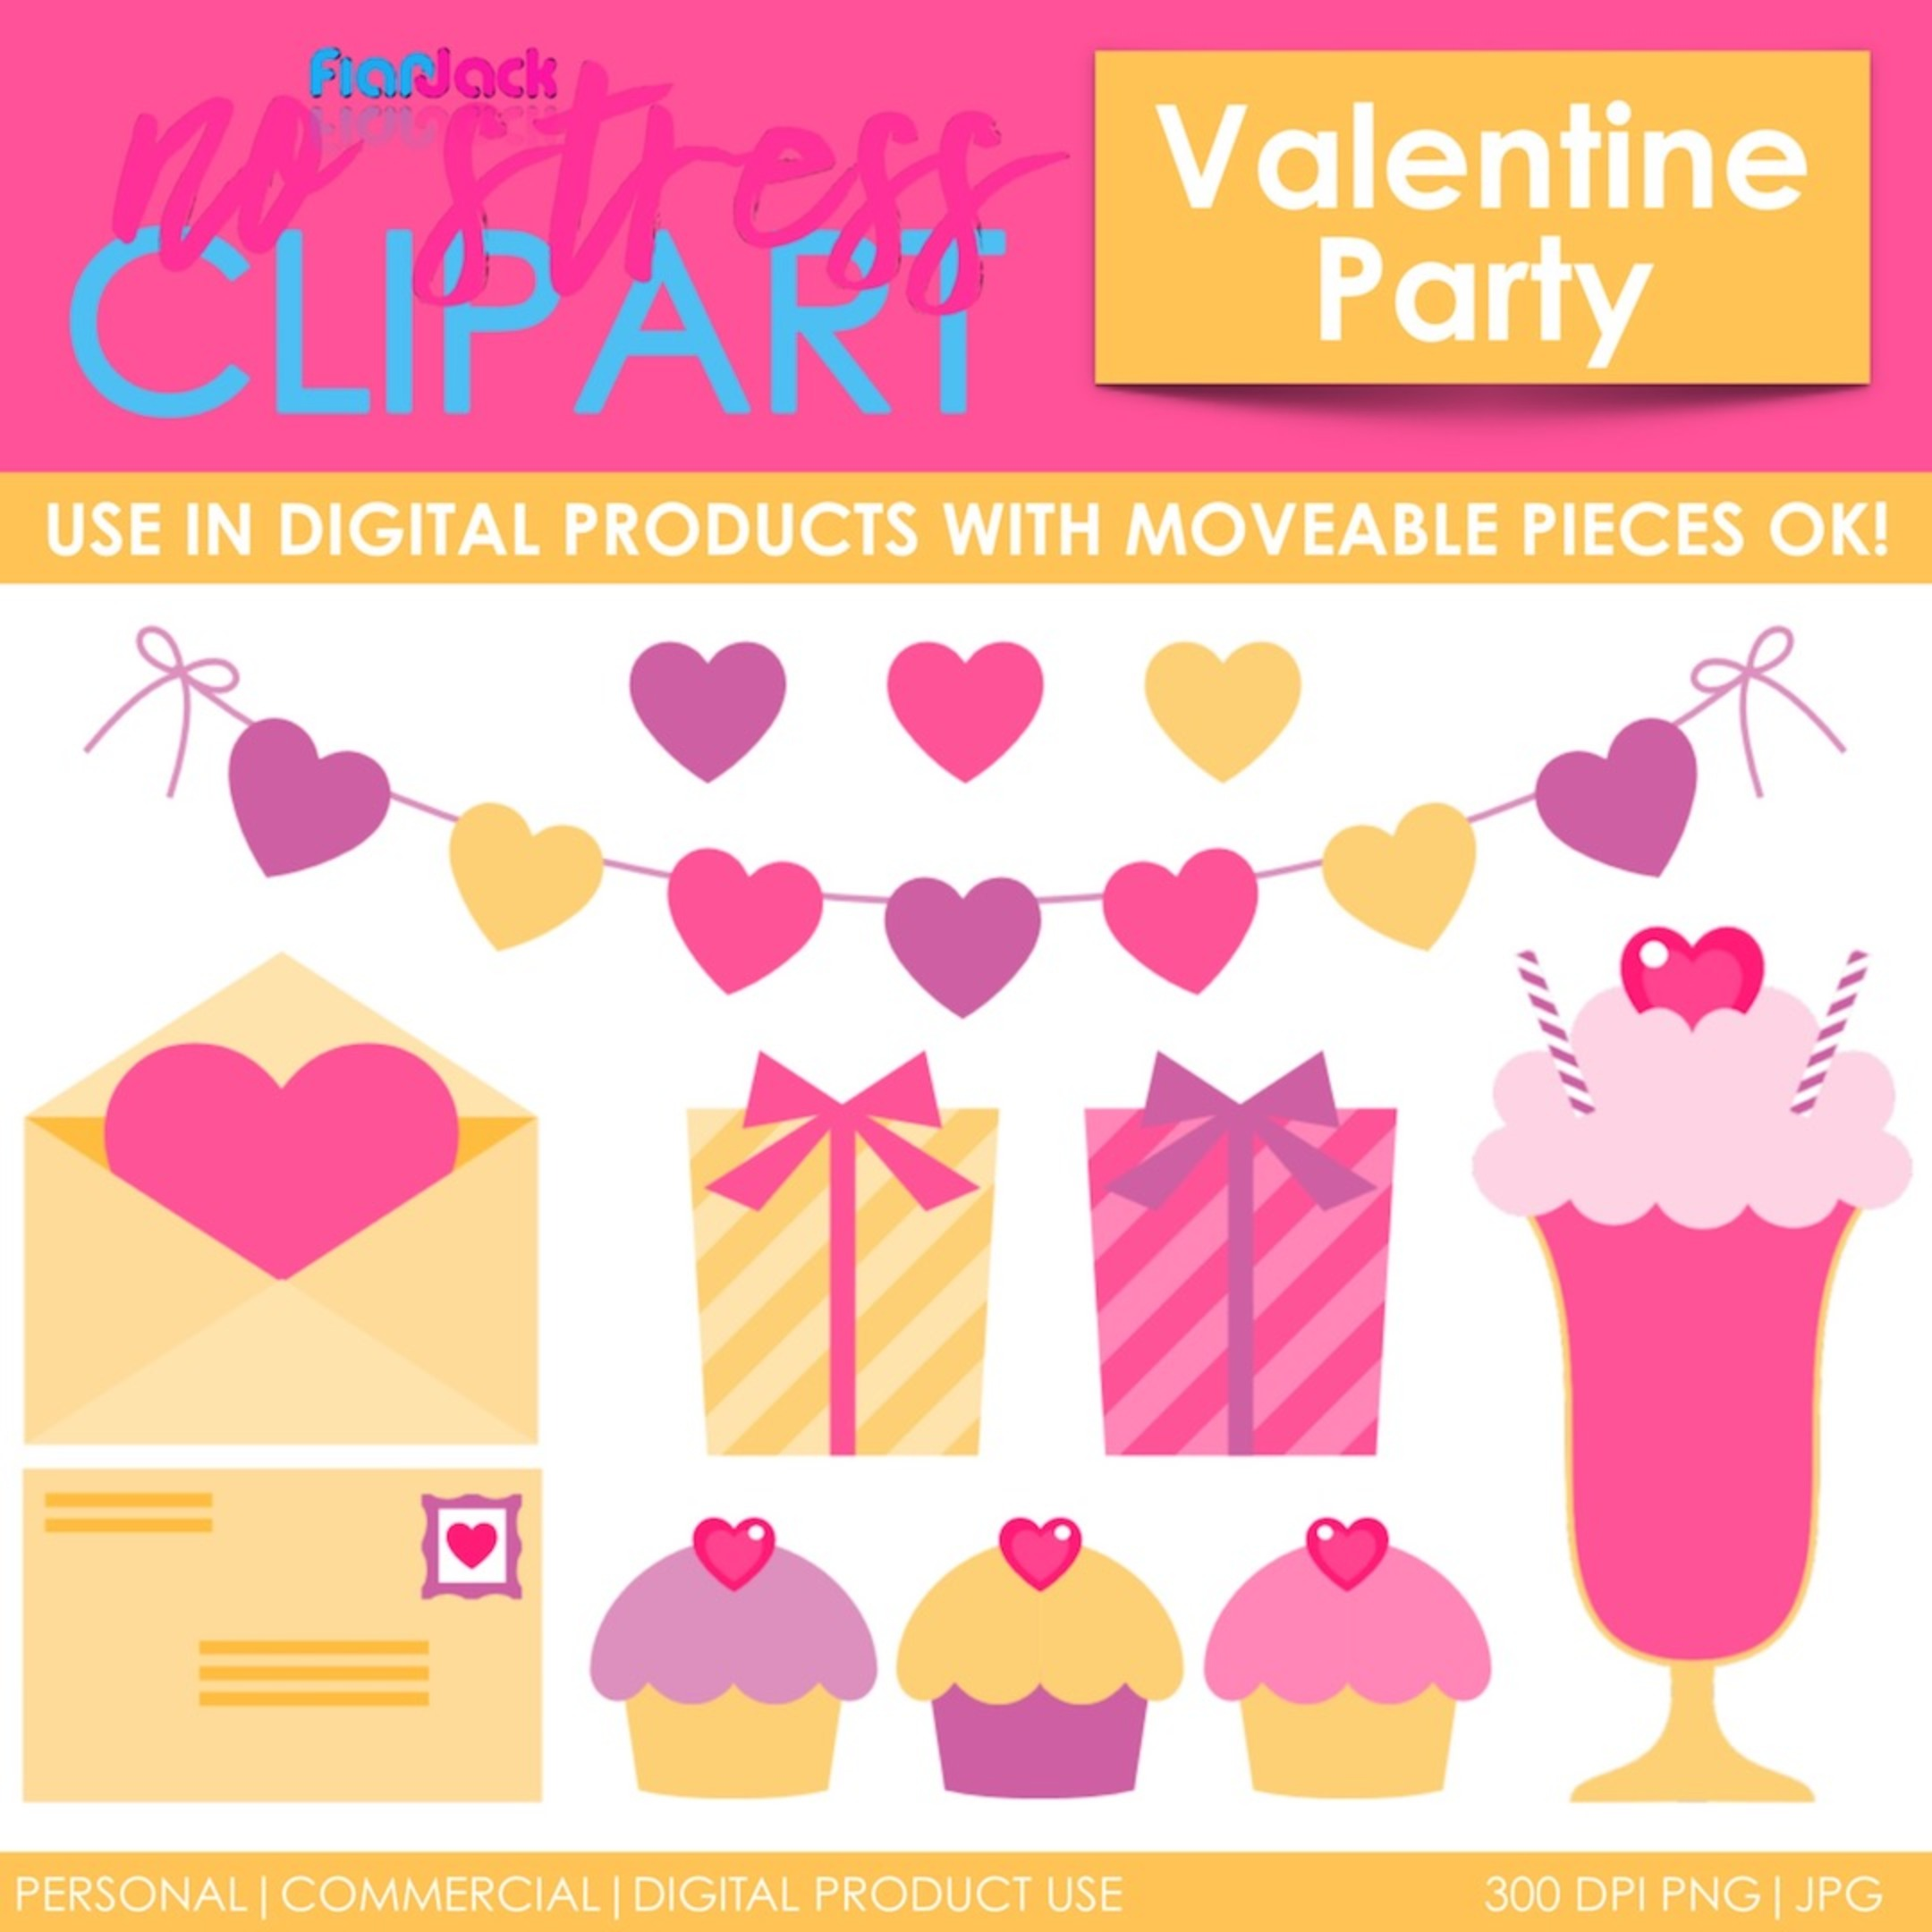 Valentine Sweetheart Party